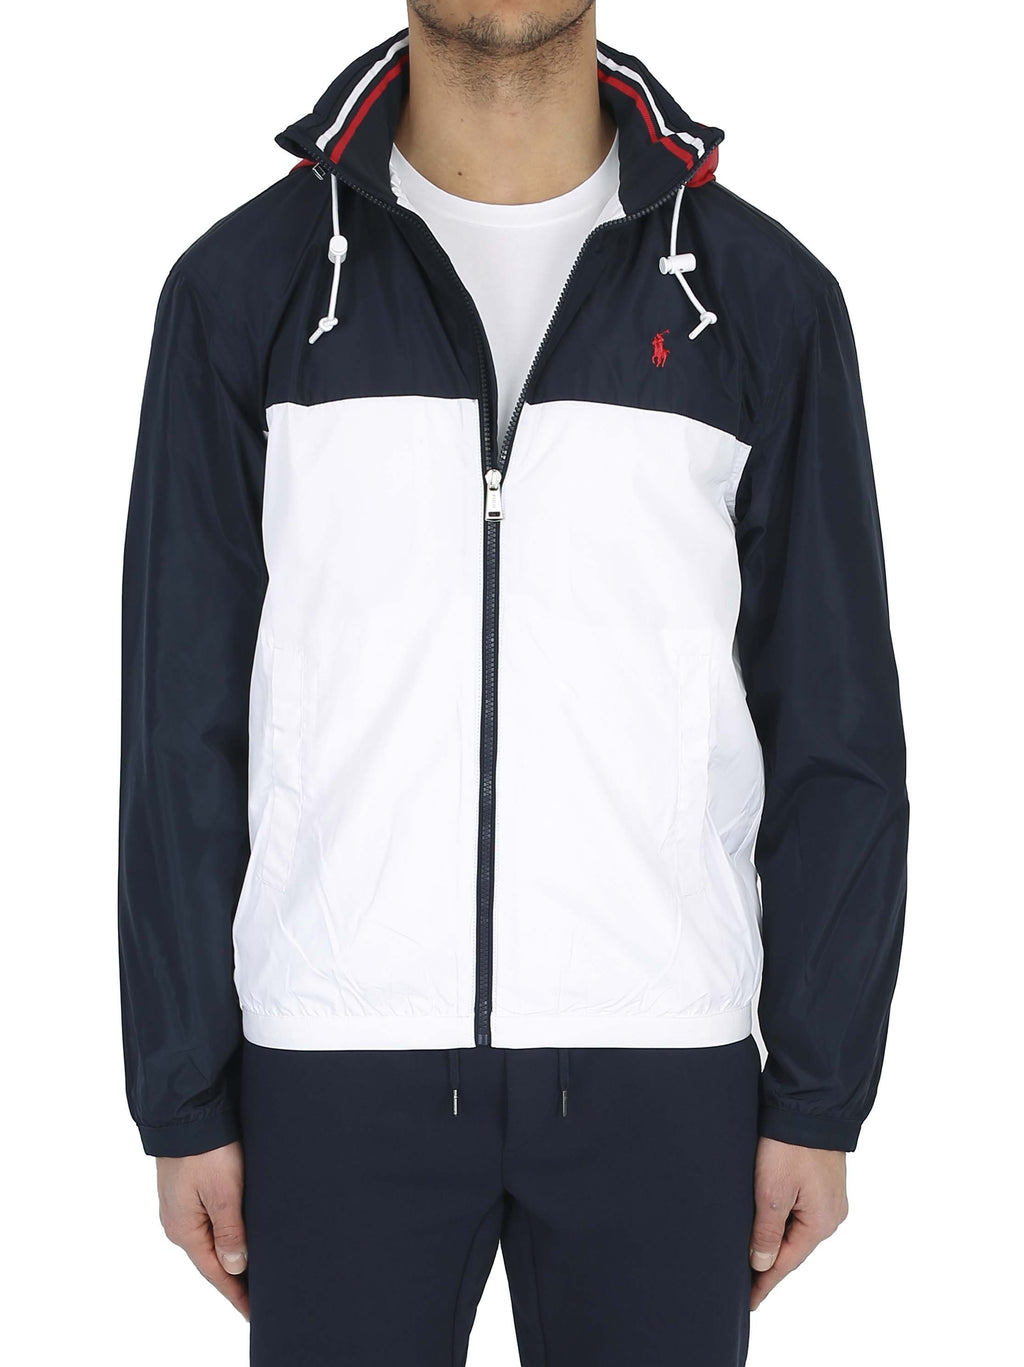 RALPH LAUREN Color block motif hooded jacket with embroidered logo